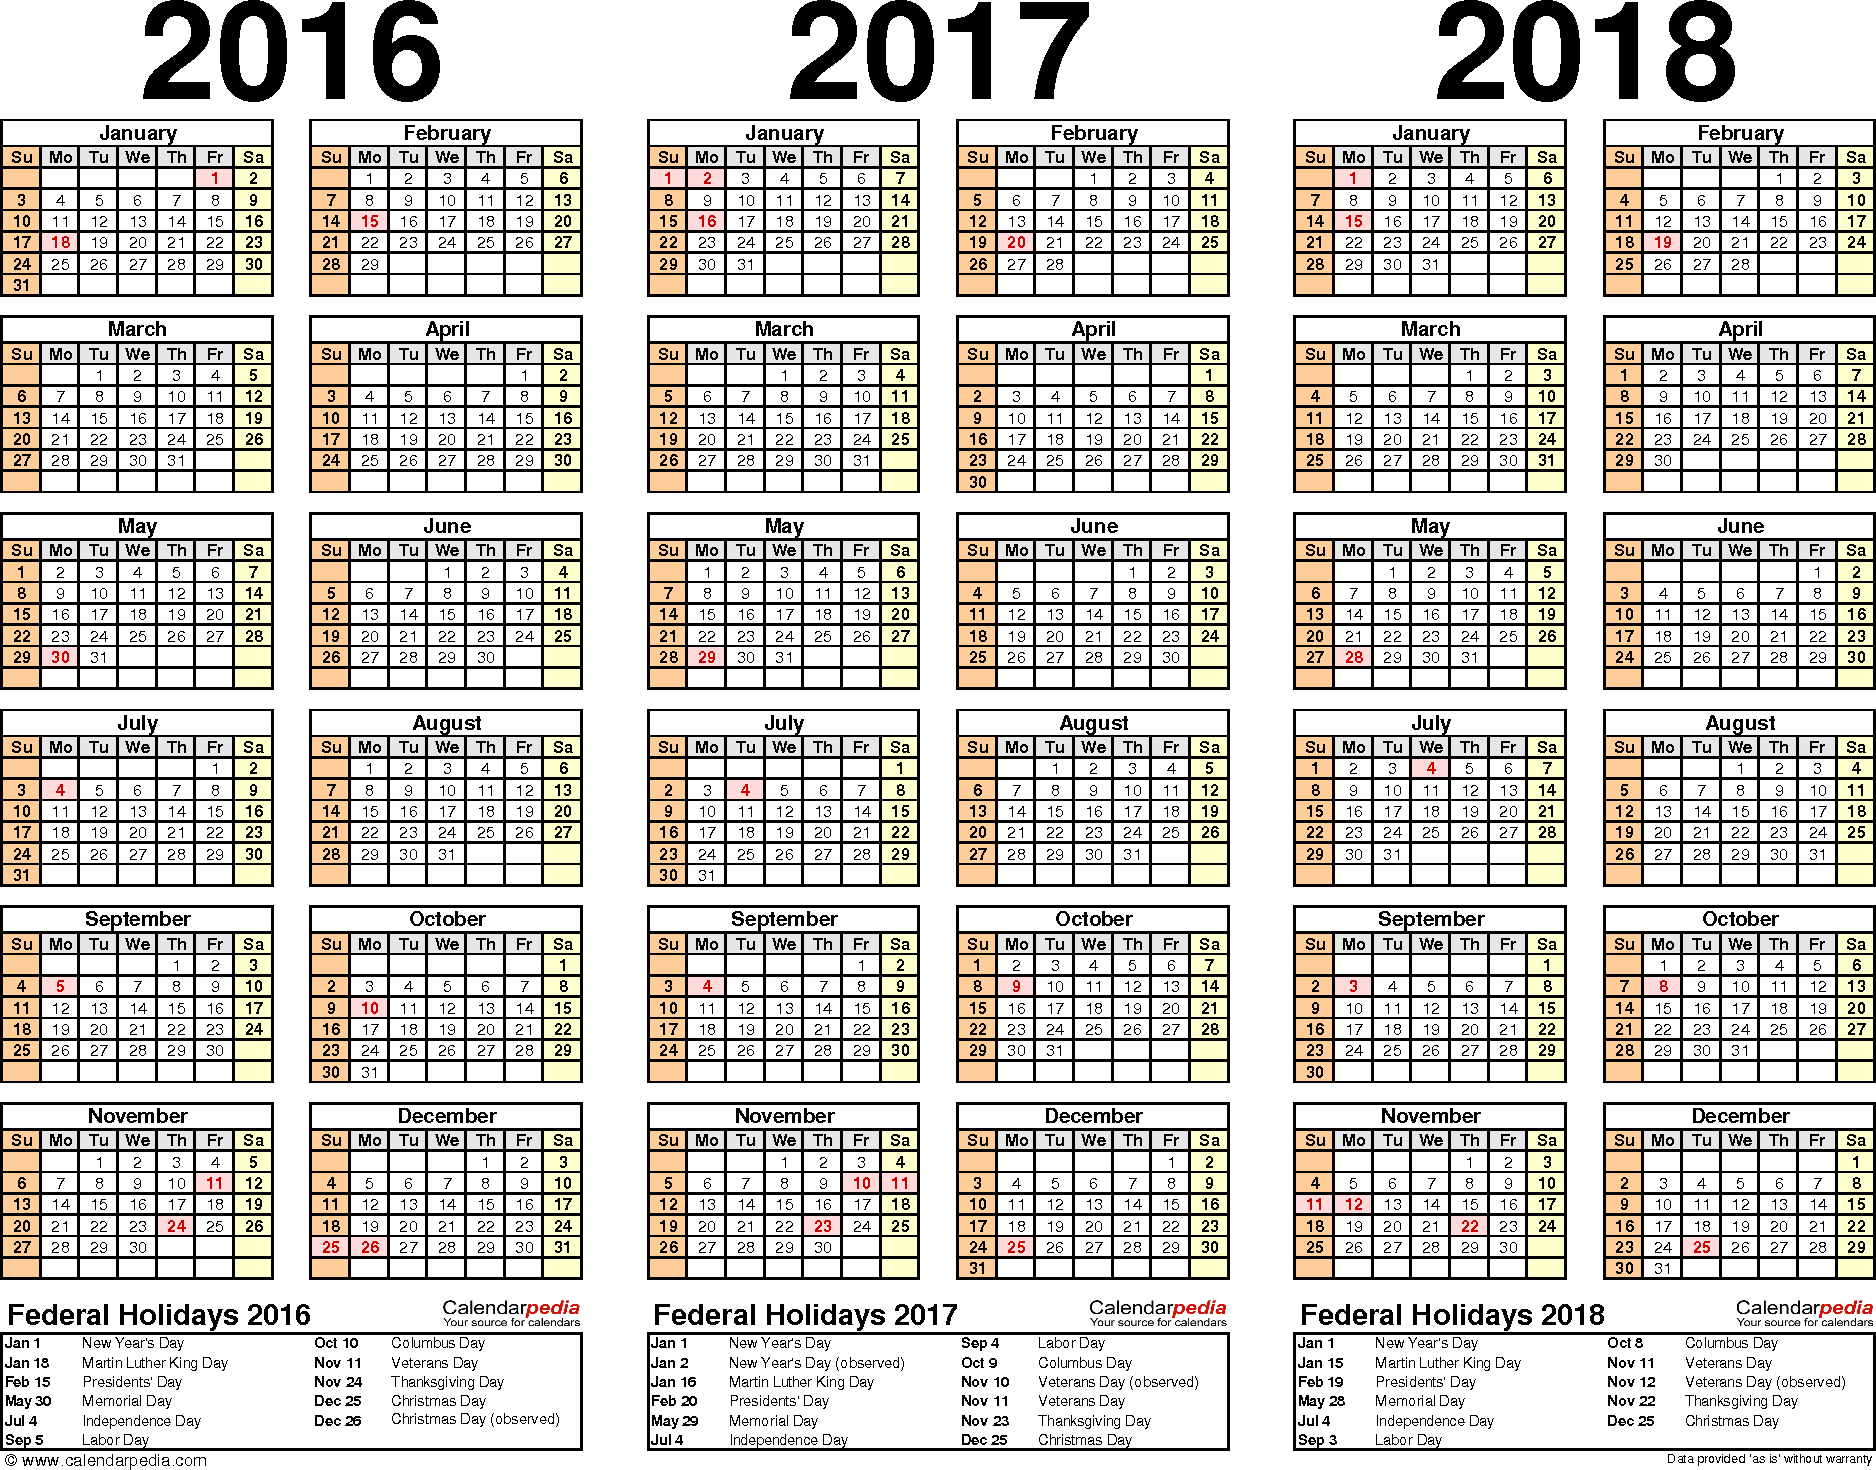 Ediblewildsus  Pleasant  Calendar   Threeyear Printable Excel Calendars With Hot Template  Excel Template For Three Year Calendar  Landscape With Beautiful Learn Excel For Free Also Micro Excel In Addition Logarithmic Scale Excel And Excel Vba Programming For Dummies As Well As Averages In Excel Additionally Excel Min From Calendarpediacom With Ediblewildsus  Hot  Calendar   Threeyear Printable Excel Calendars With Beautiful Template  Excel Template For Three Year Calendar  Landscape And Pleasant Learn Excel For Free Also Micro Excel In Addition Logarithmic Scale Excel From Calendarpediacom